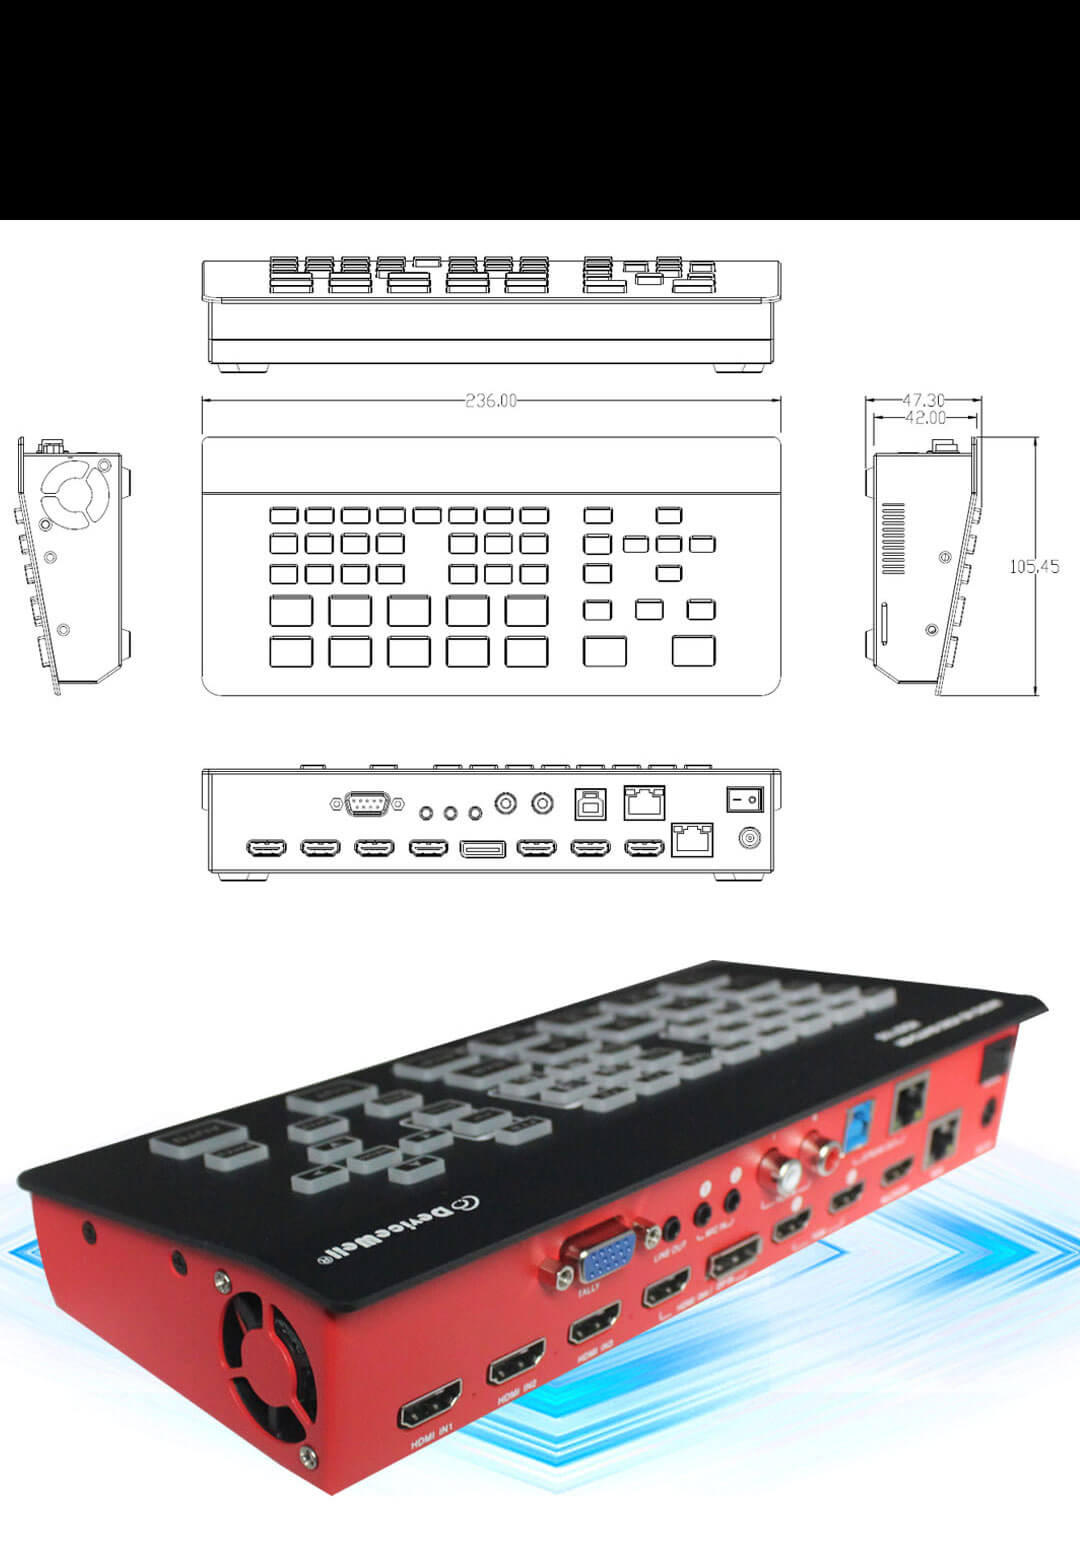 Devicewell HDS 7105 020